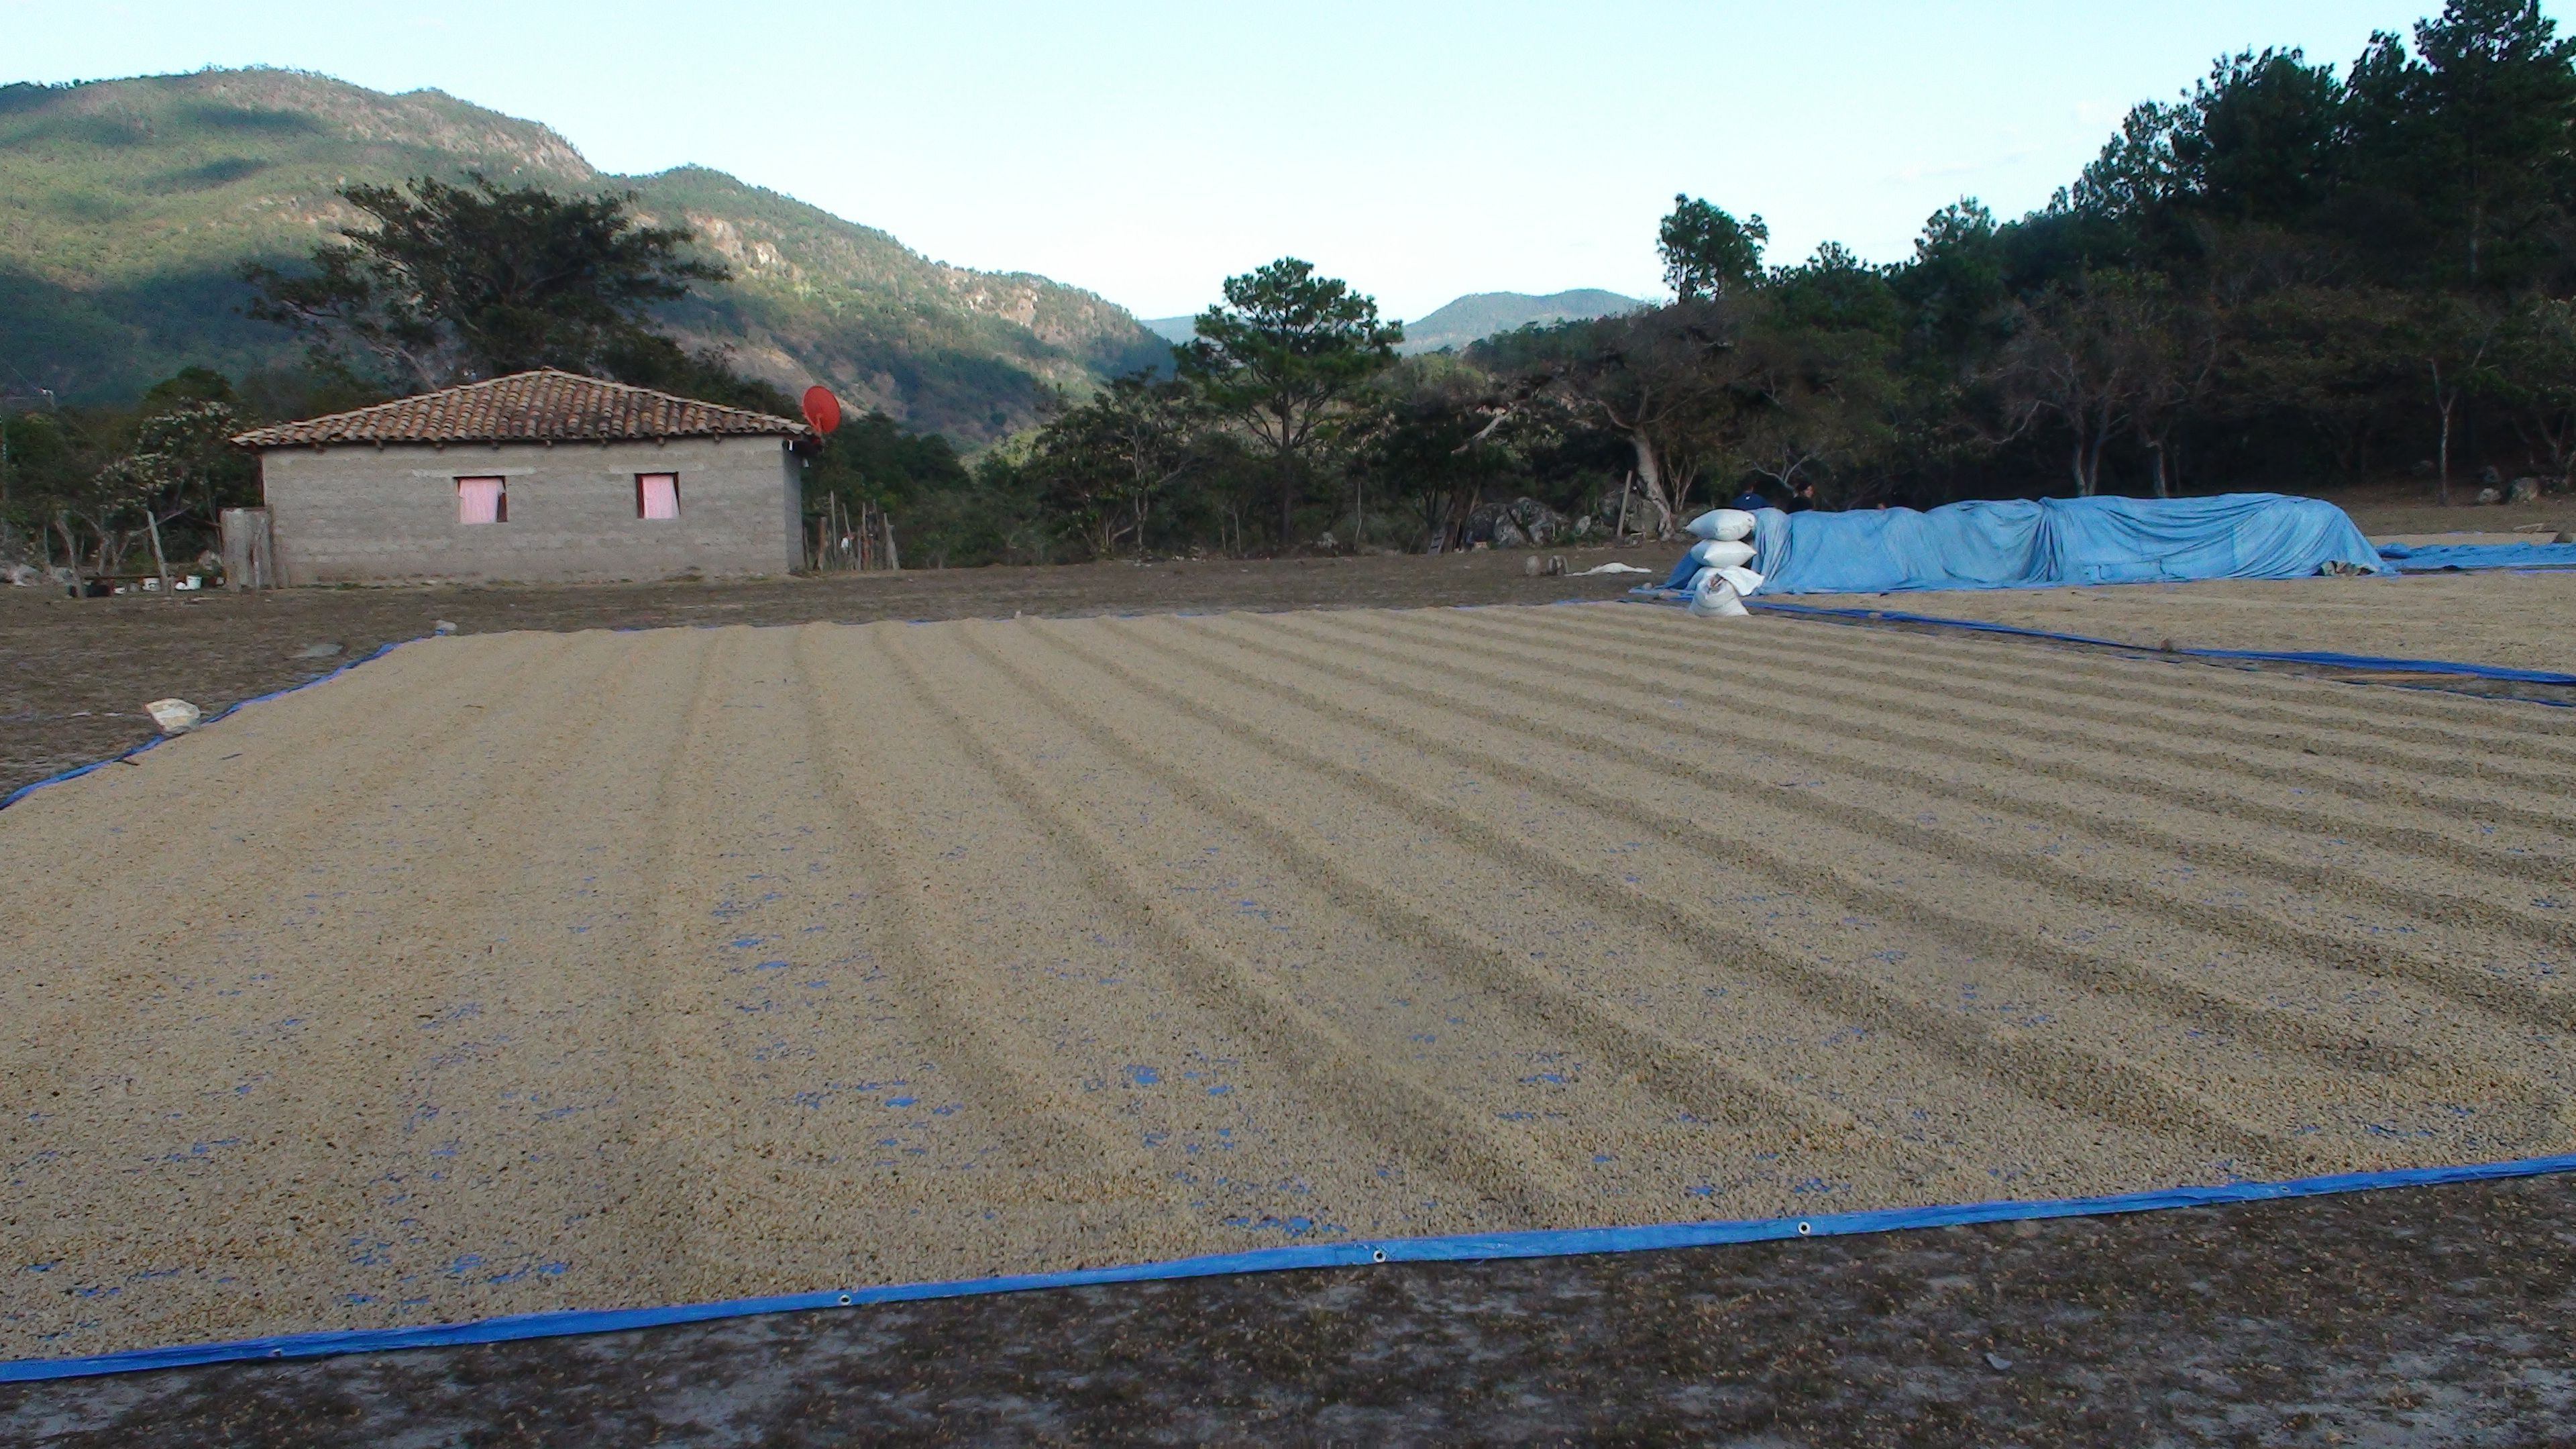 Honduras Jan. 2014 Medical/Dental Brigade, San Antonio Valle - Coffee beans that have been harvested laying out to dry